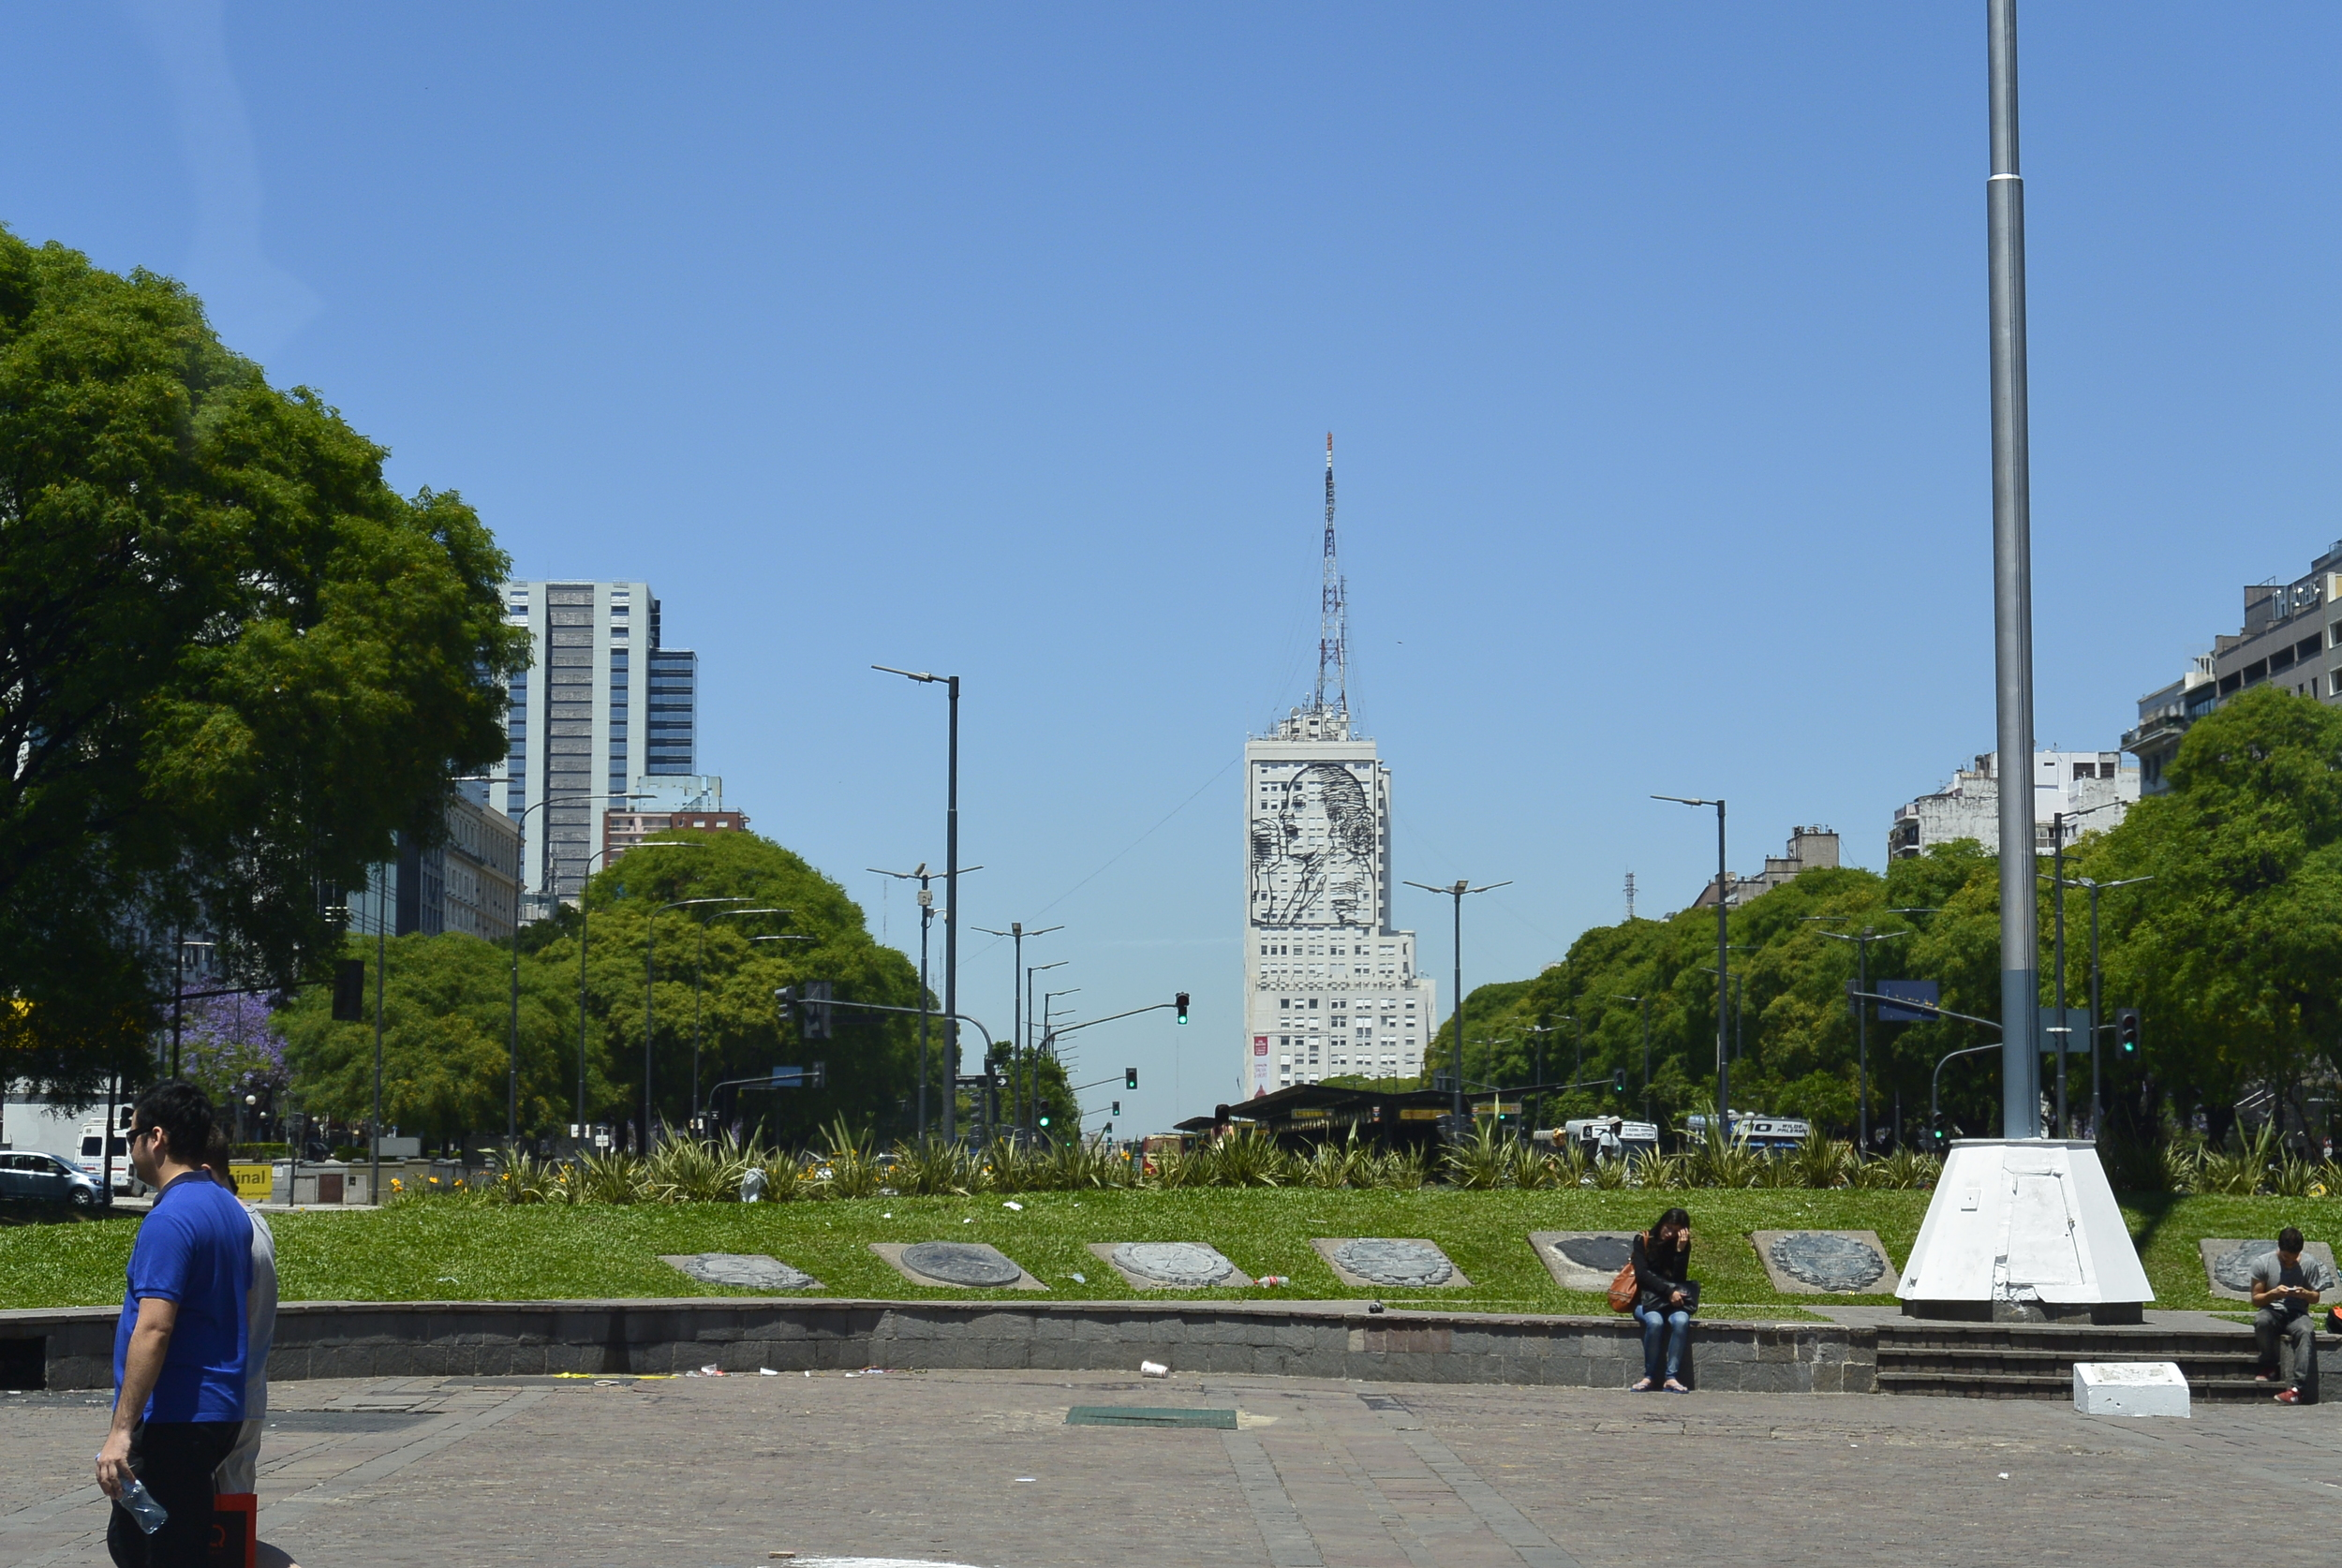 Buenos Aires Argentina Ministry of Health